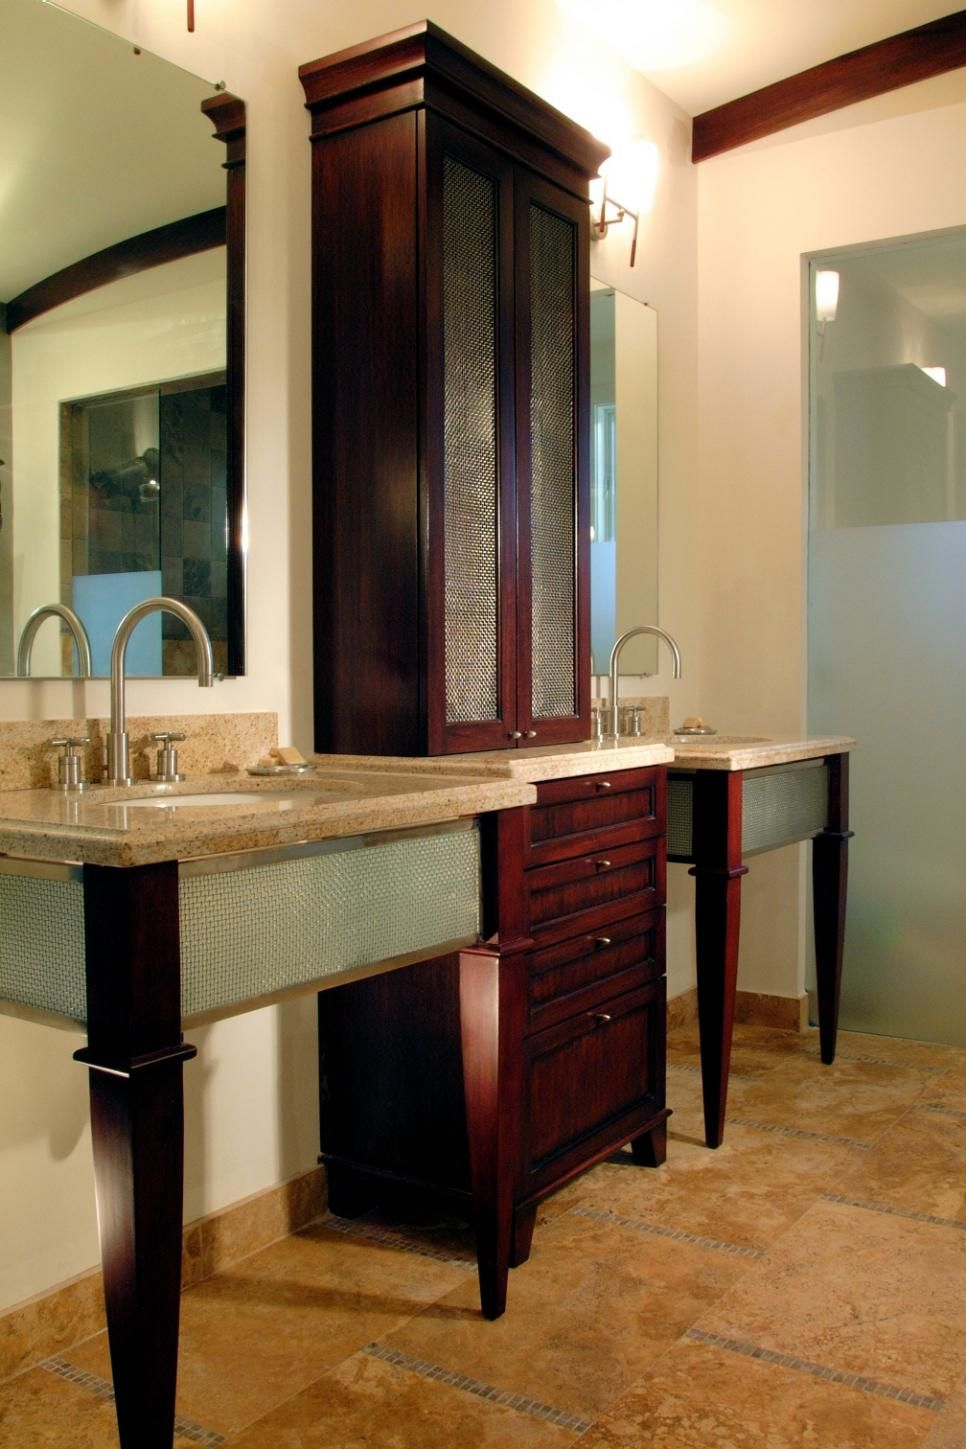 18 Savvy Bathroom Vanity Storage Ideas  Bathroom Floor Cabinets Best Small Bathroom Countertop Ideas Design Decoration